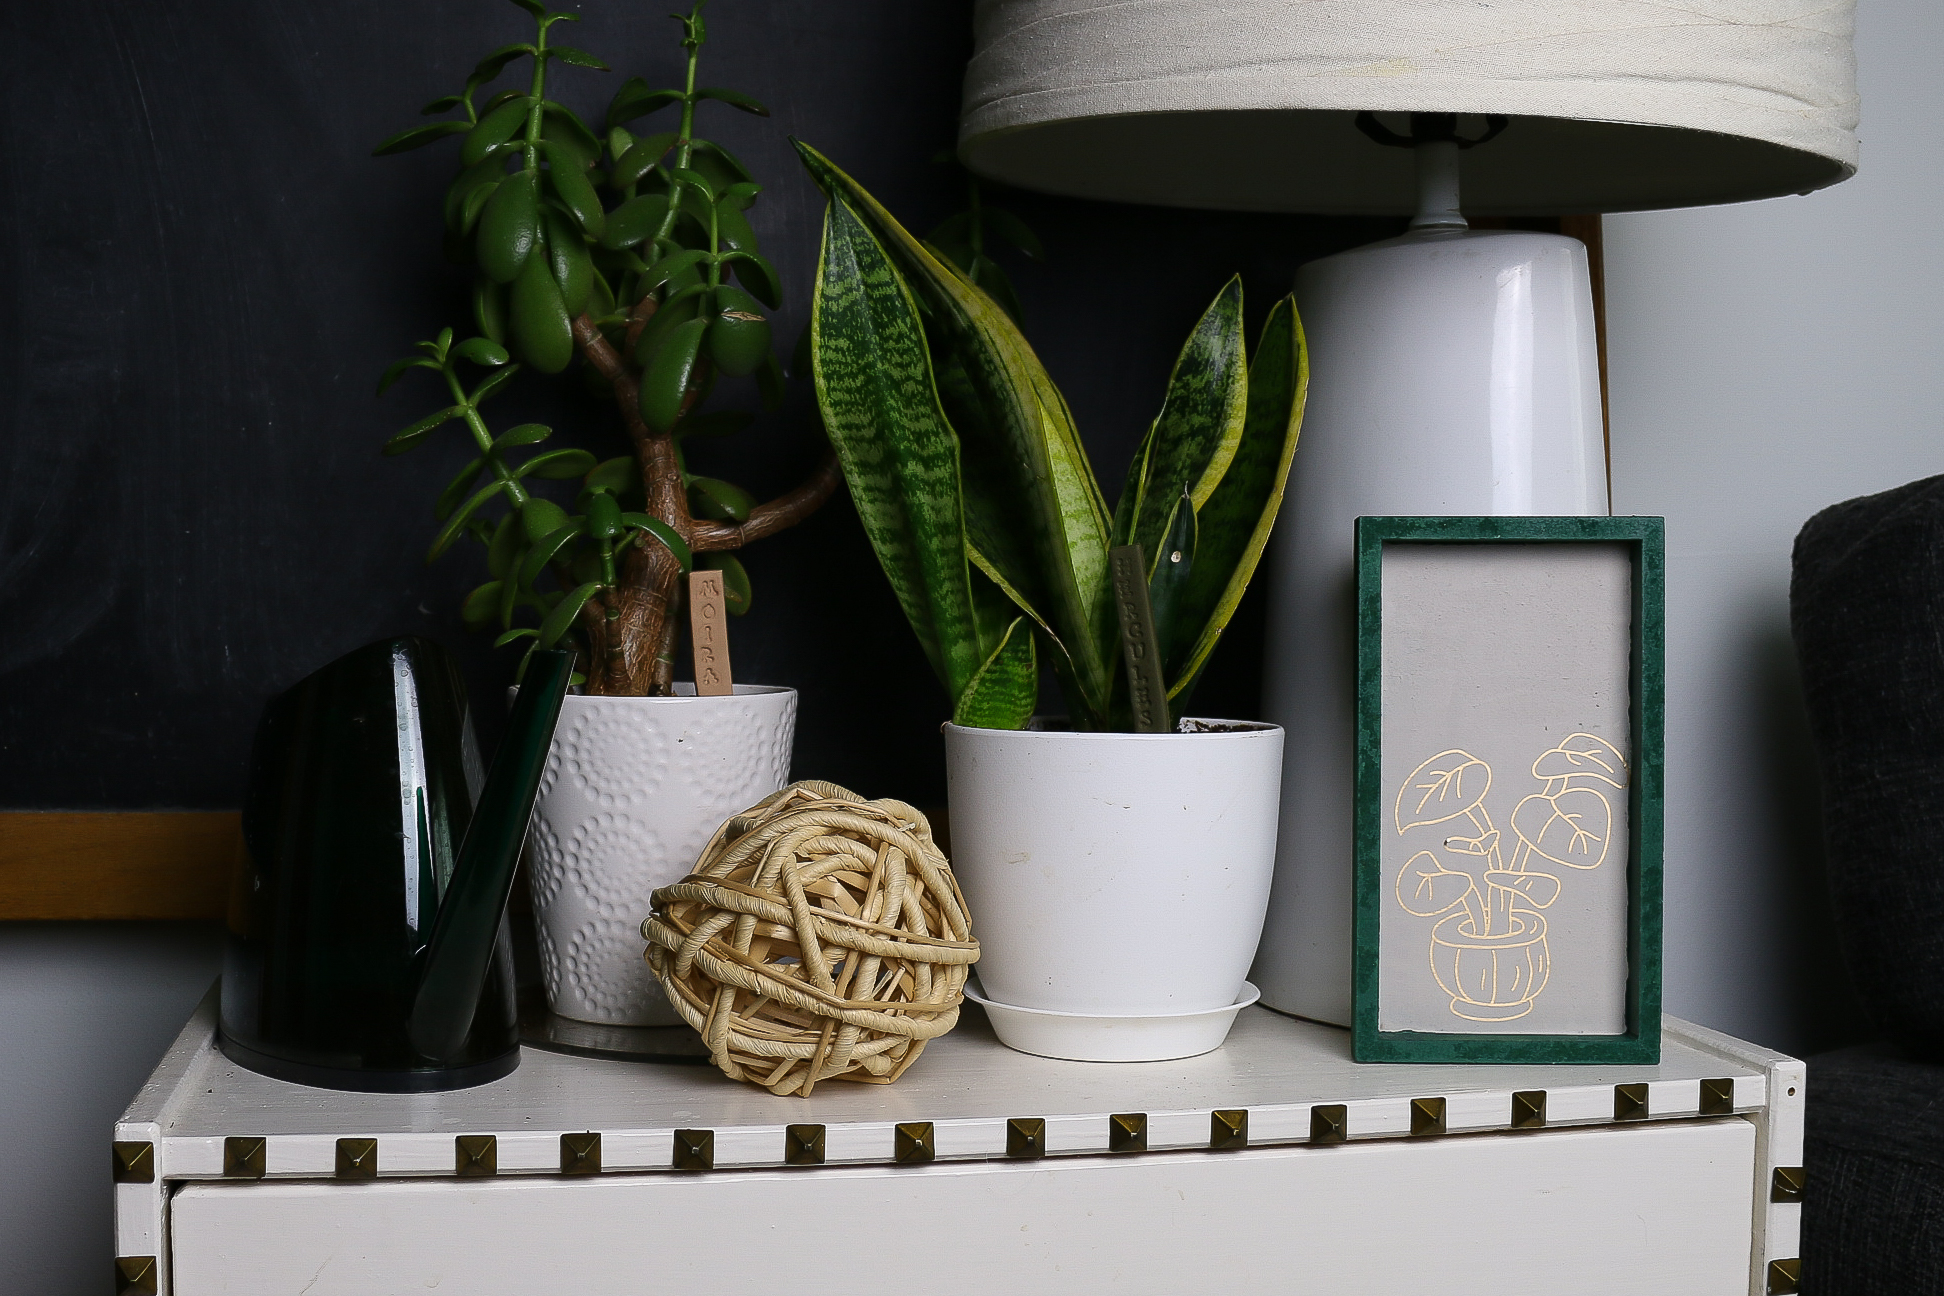 a sidetable with plants and a framed piece of plant artwork